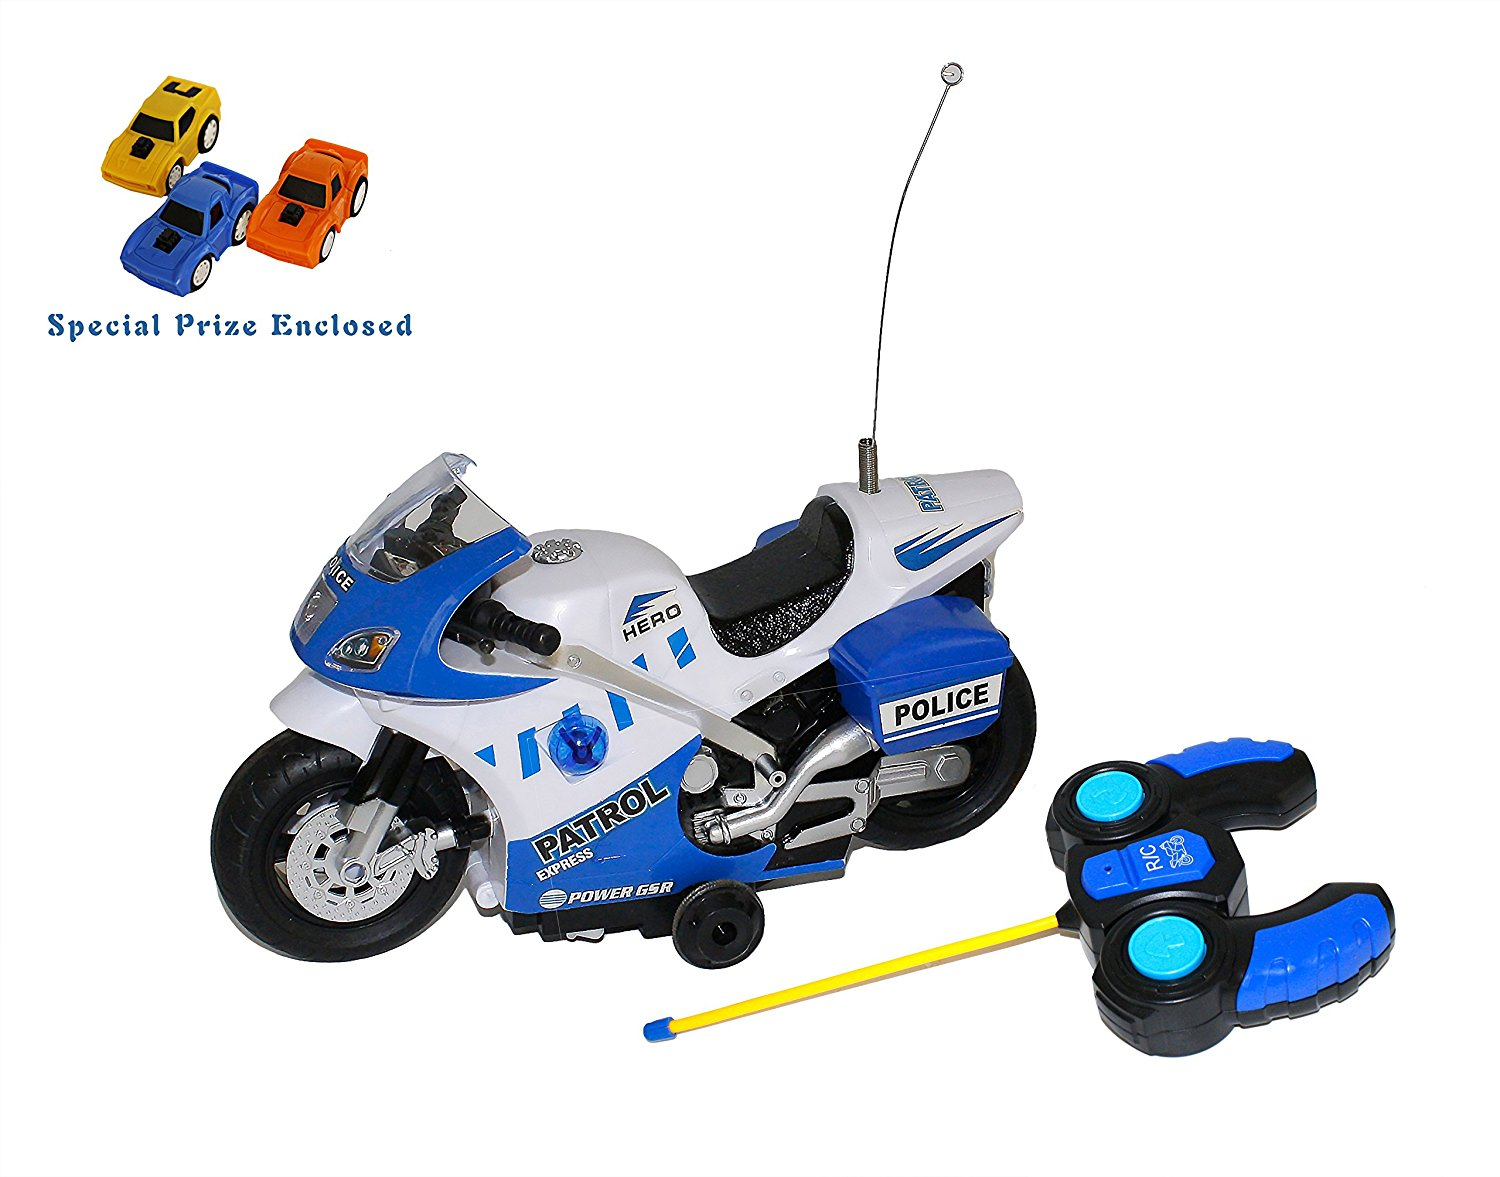 4 Channel RC Electric City Motorcycle, Police Patrol Remote Control Motor Bike with Lights & Sirens (colors may vary) FREE GIFT INCLUDED